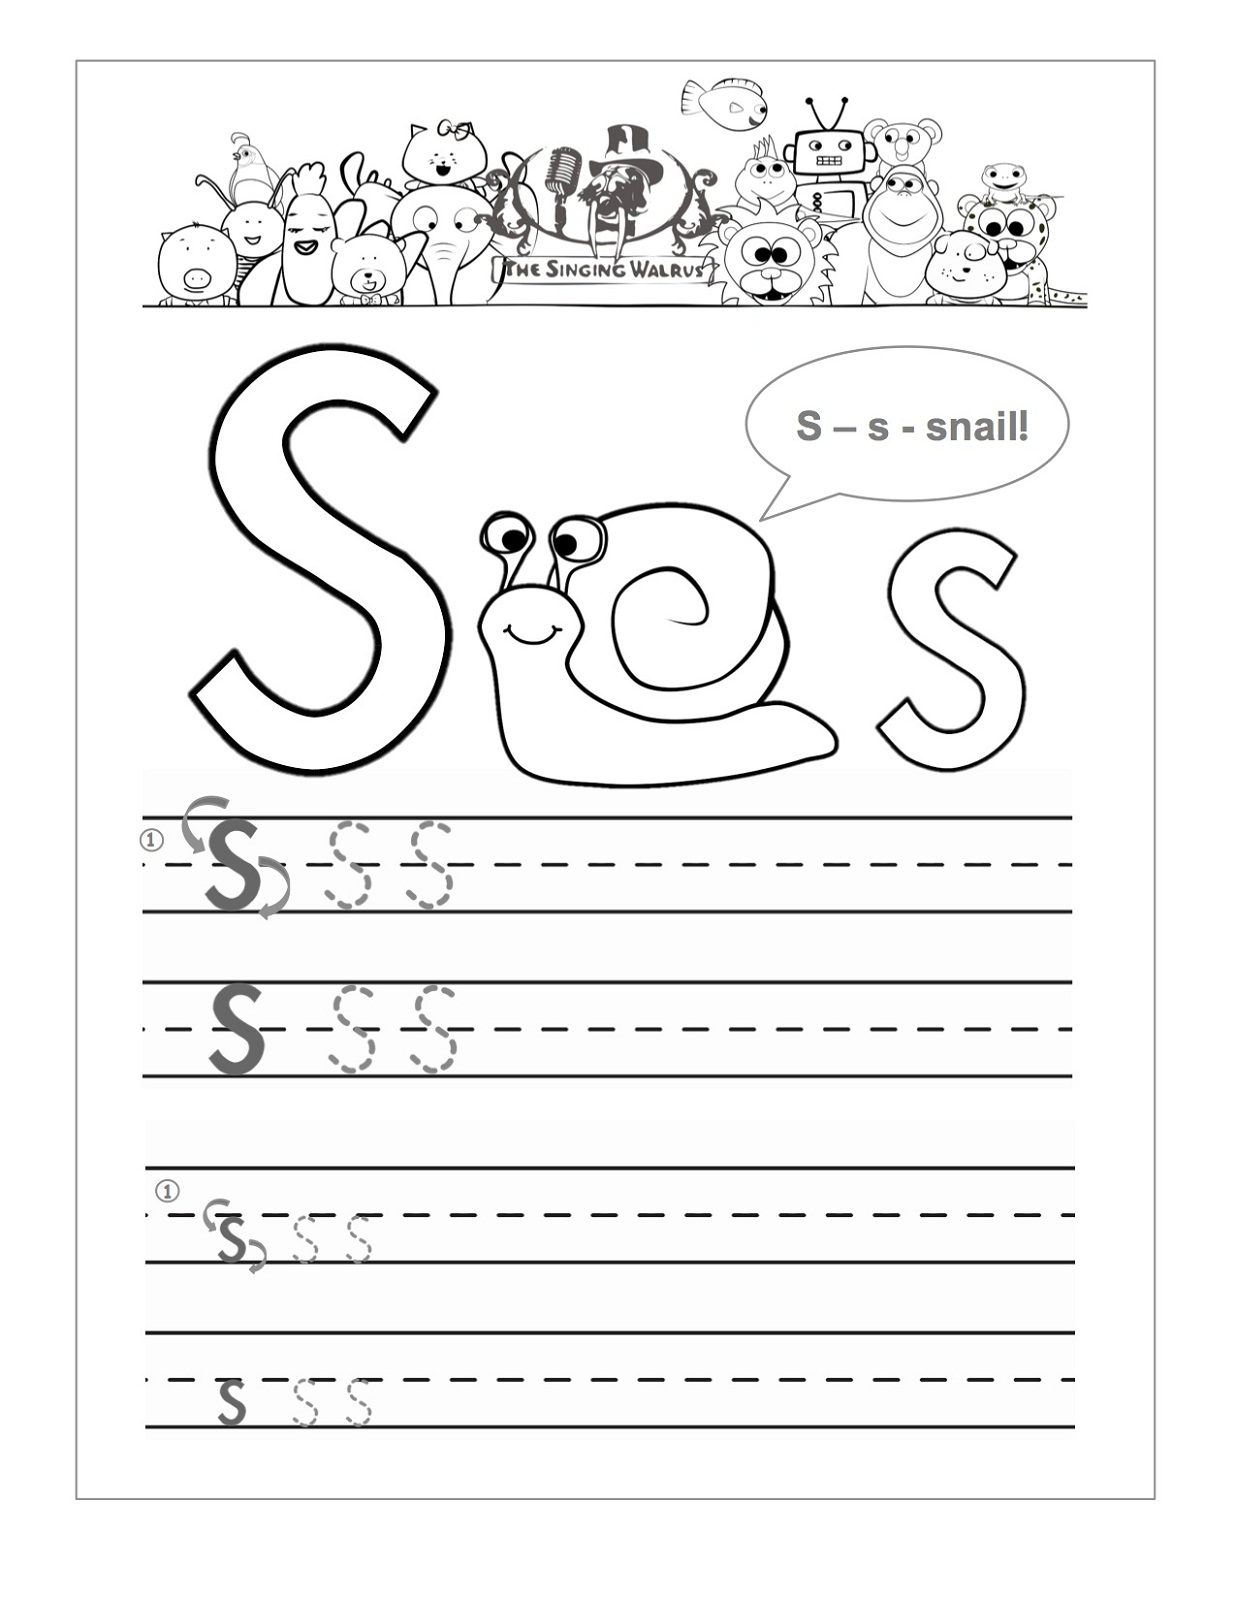 Letter S Worksheets Kindergarten K5 Education Resources – S Worksheets for Kindergarten